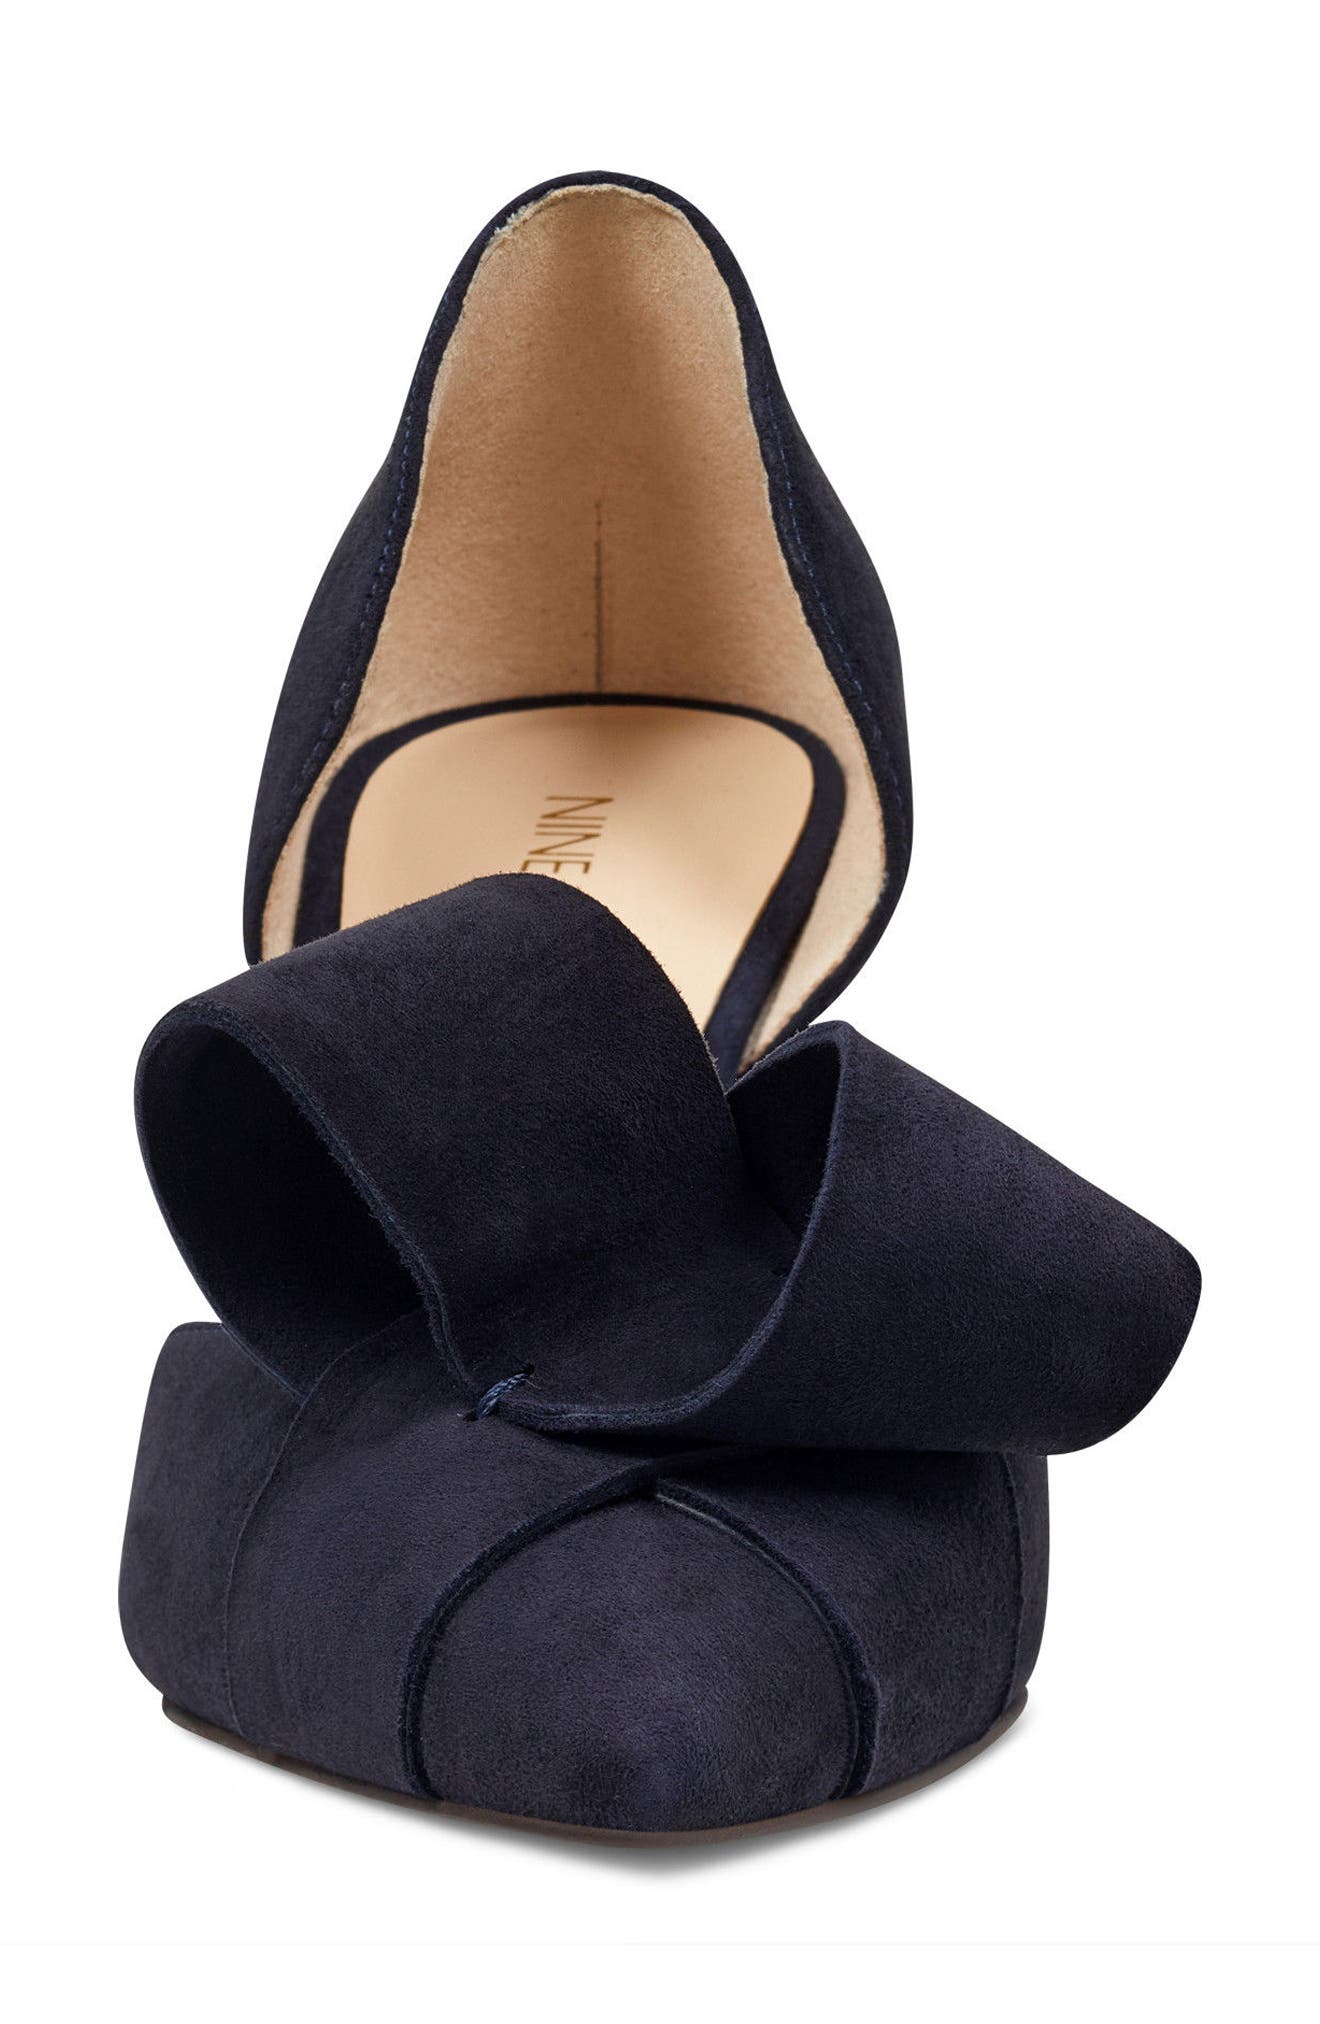 McFally d'Orsay Pump,                             Alternate thumbnail 4, color,                             NAVY SUEDE